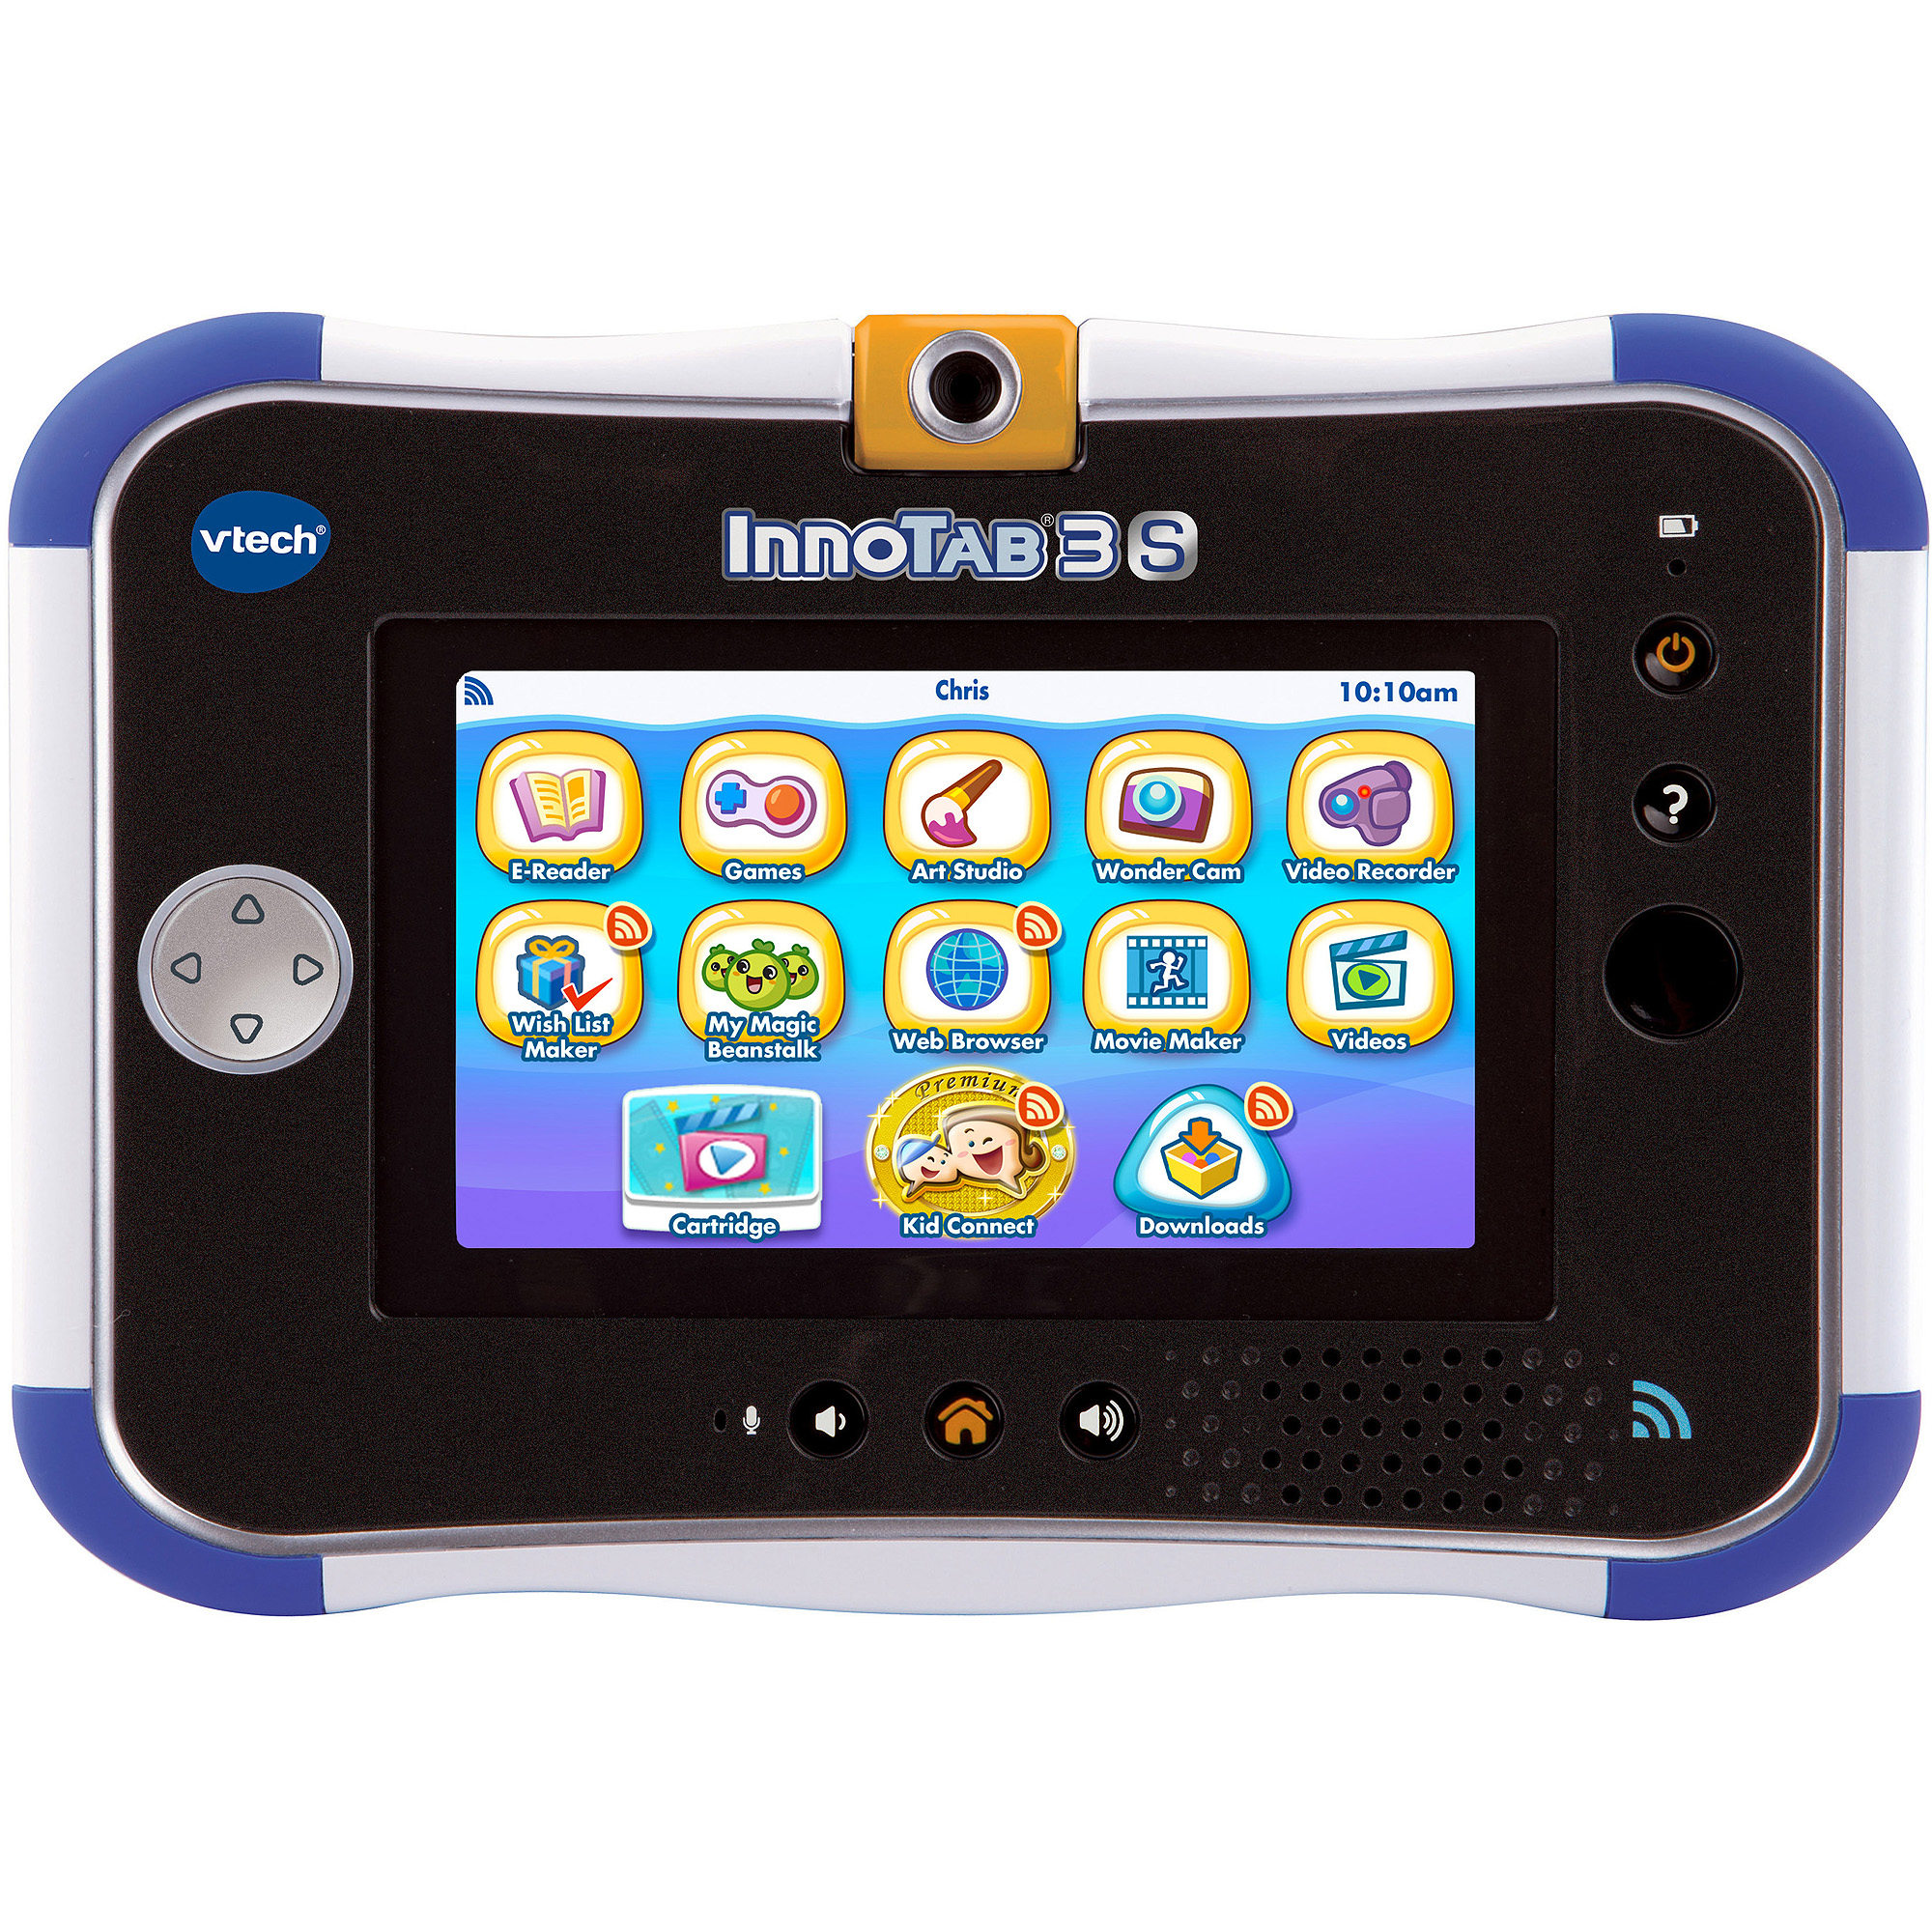 VTech InnoTab 3S Plus Kid's Learning Tablet with Wi-Fi, Assorted Colors